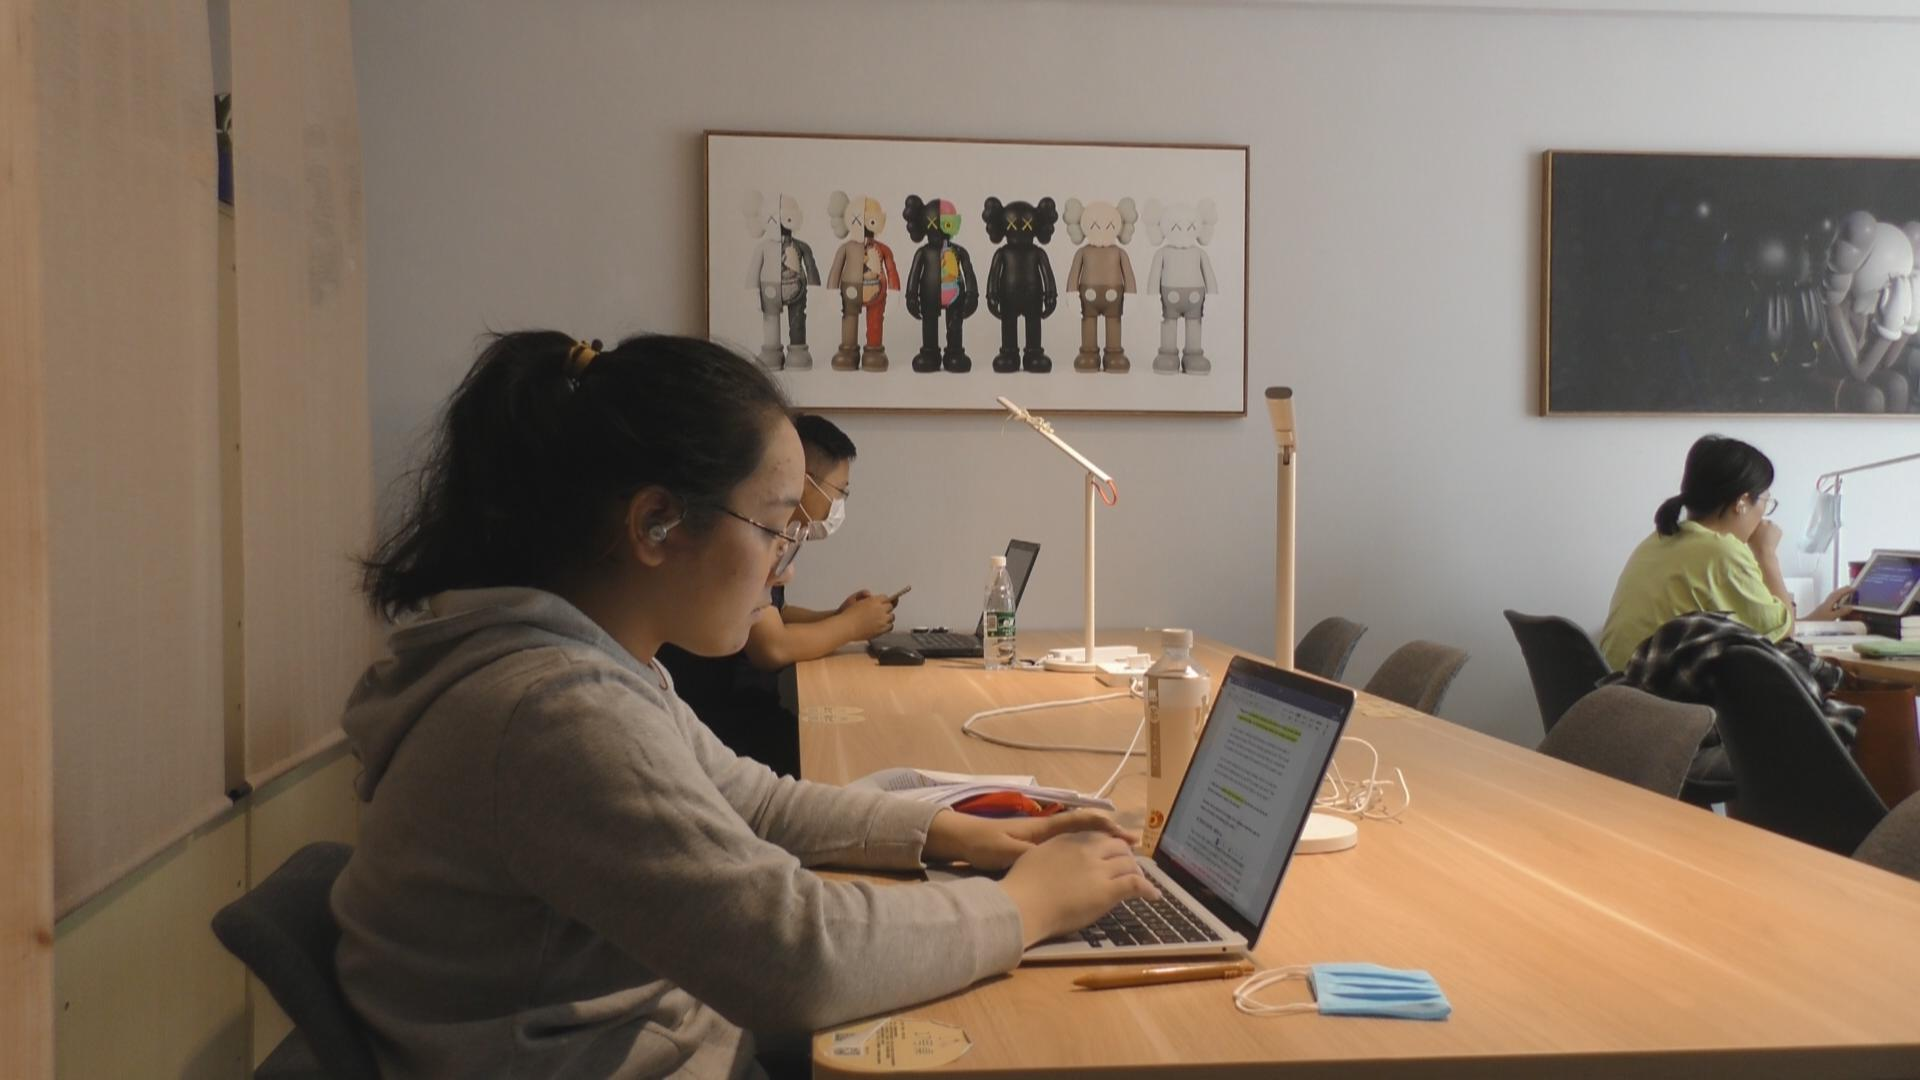 Study room-sharing booms in China